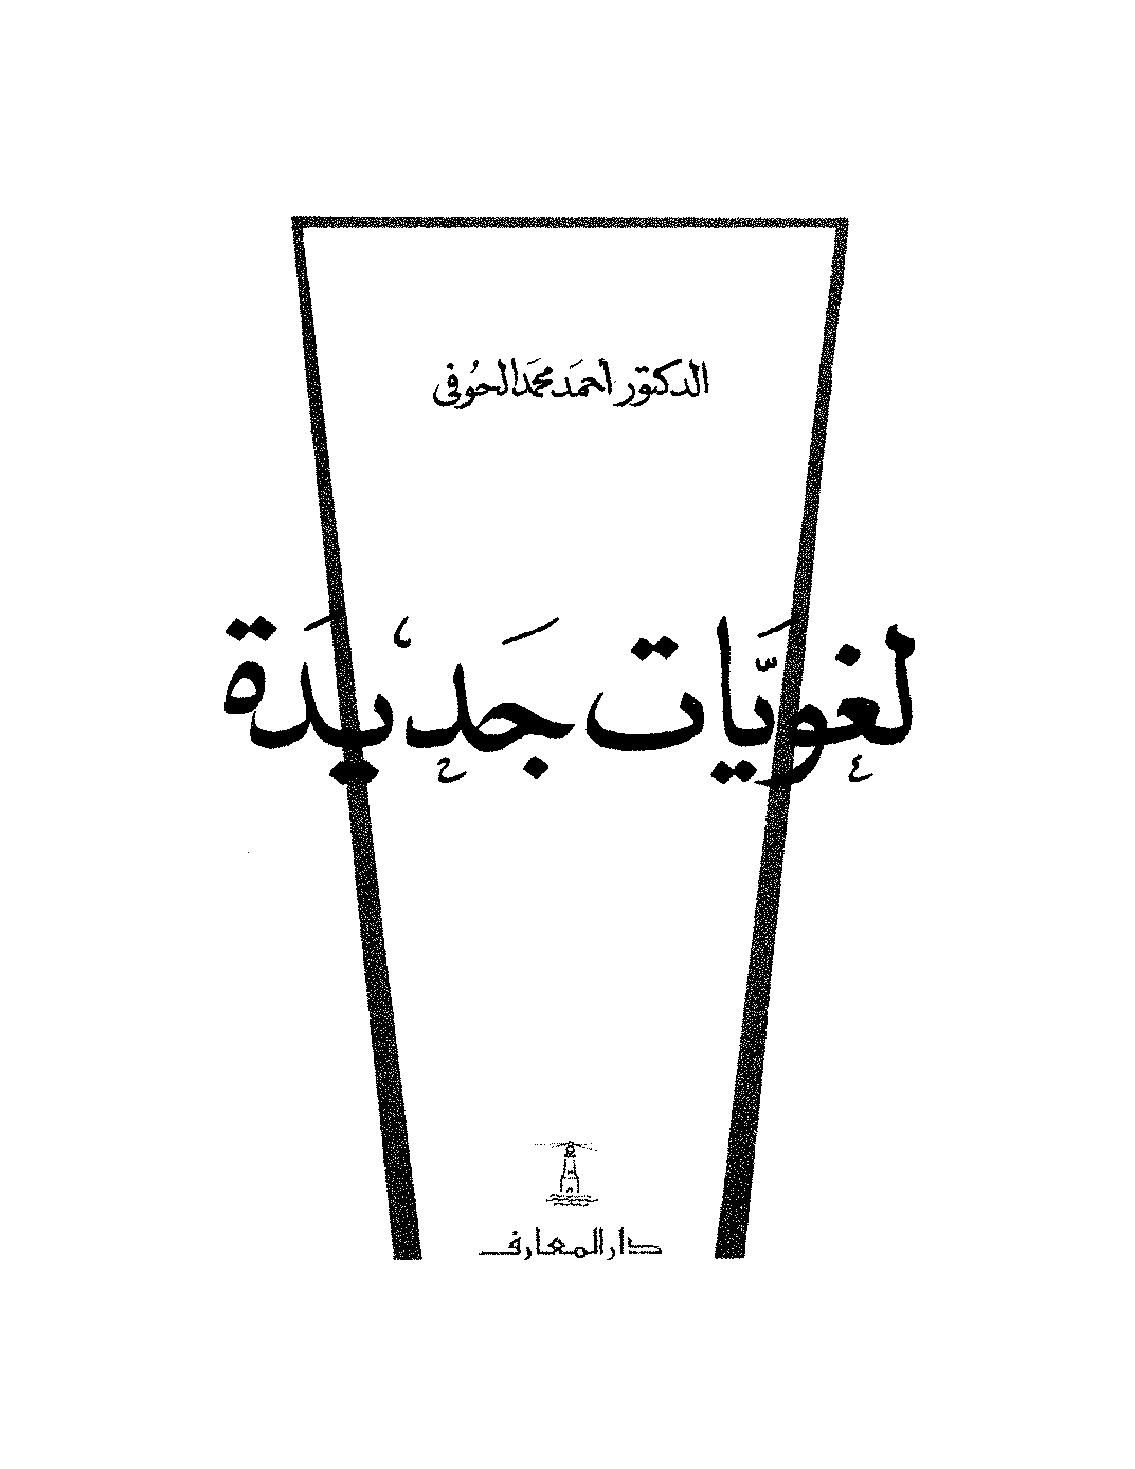 149book1 1966 Free Download Borrow And Streaming Internet Archive In 2021 Internet Archive Arabic Books Free Download